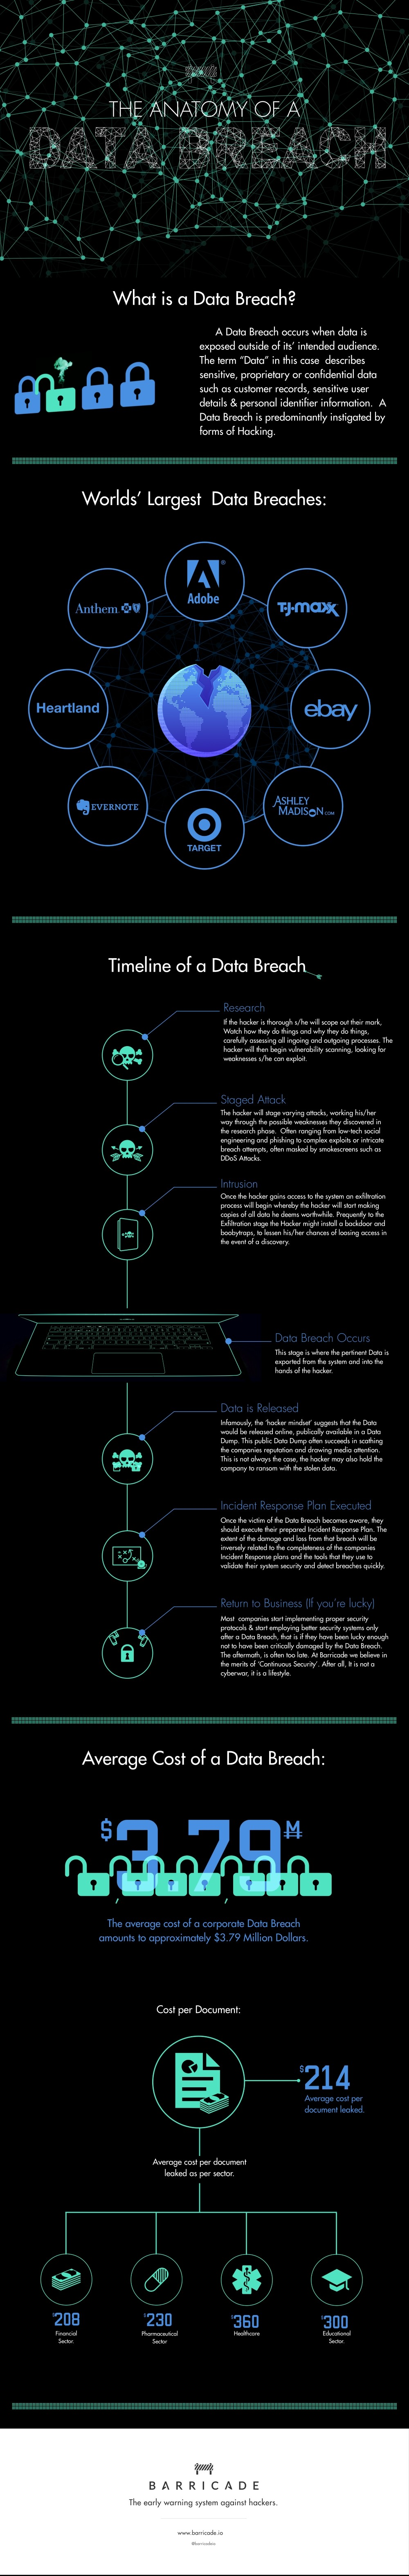 Infographic: The Anatomy of a Data Breach